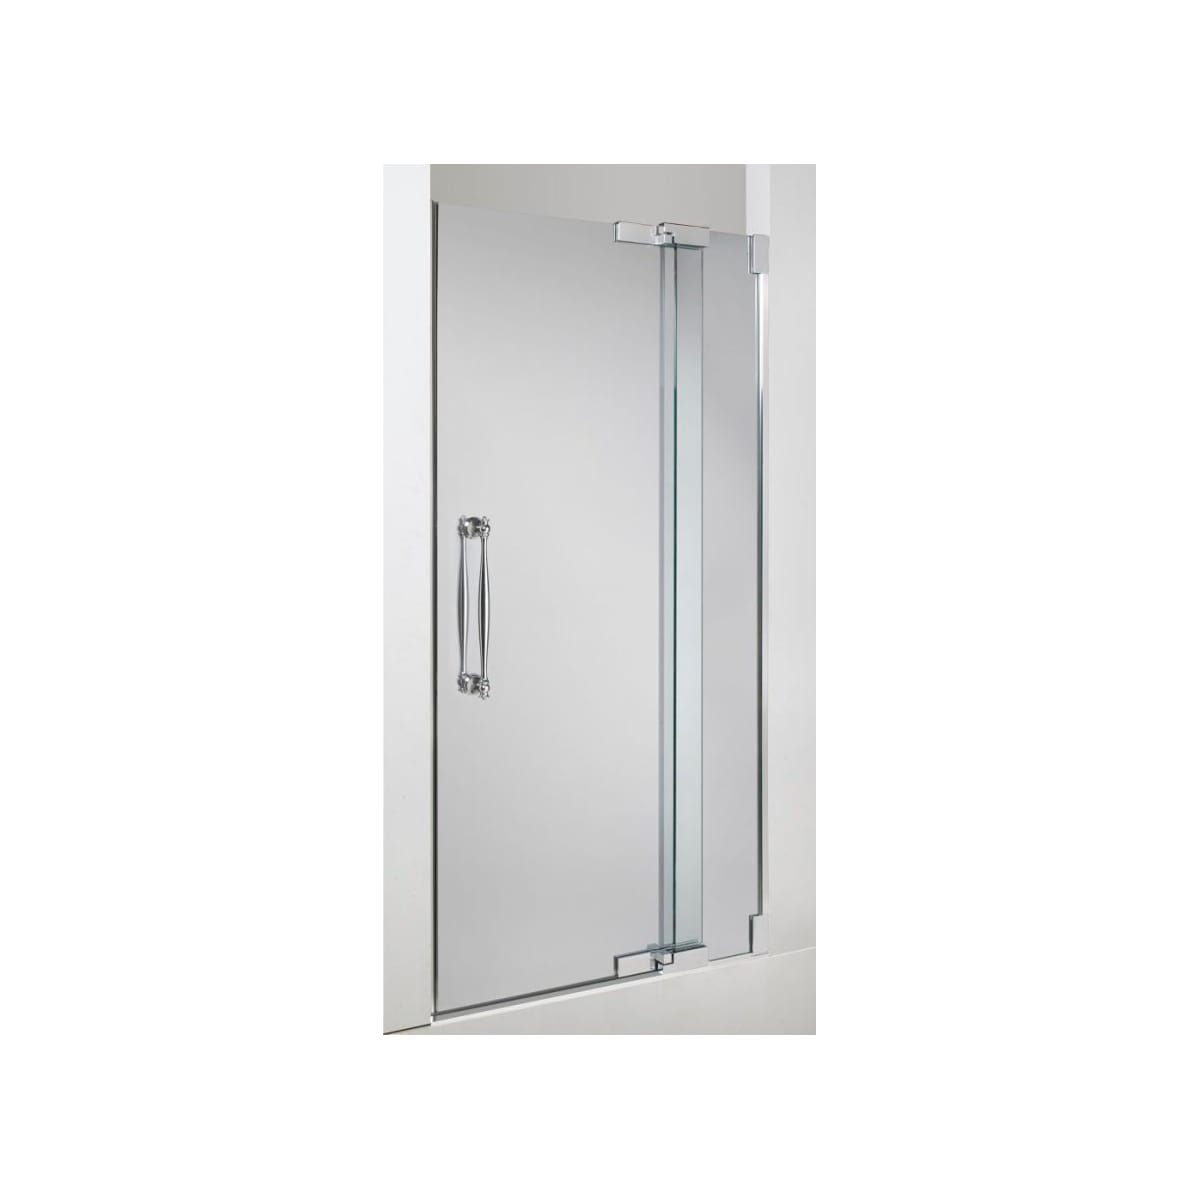 Kohler K 705763 Nx Brushed Nickel Extrusions And Hardware For Doors